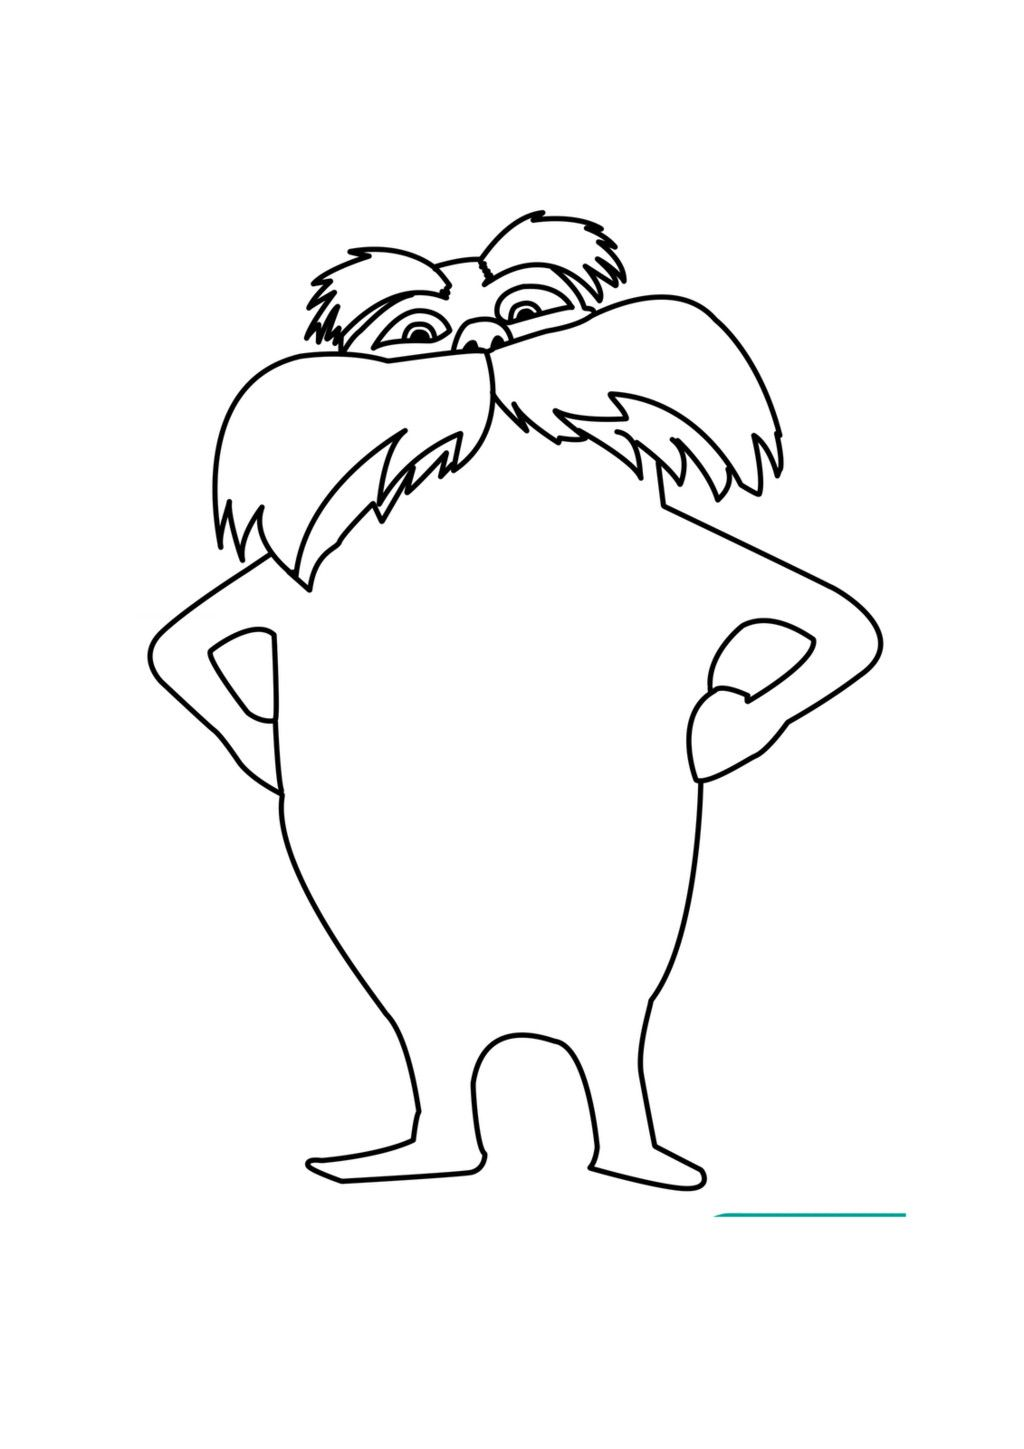 pictures of the lorax to color lorax coloring page coloring home pictures to the lorax color of